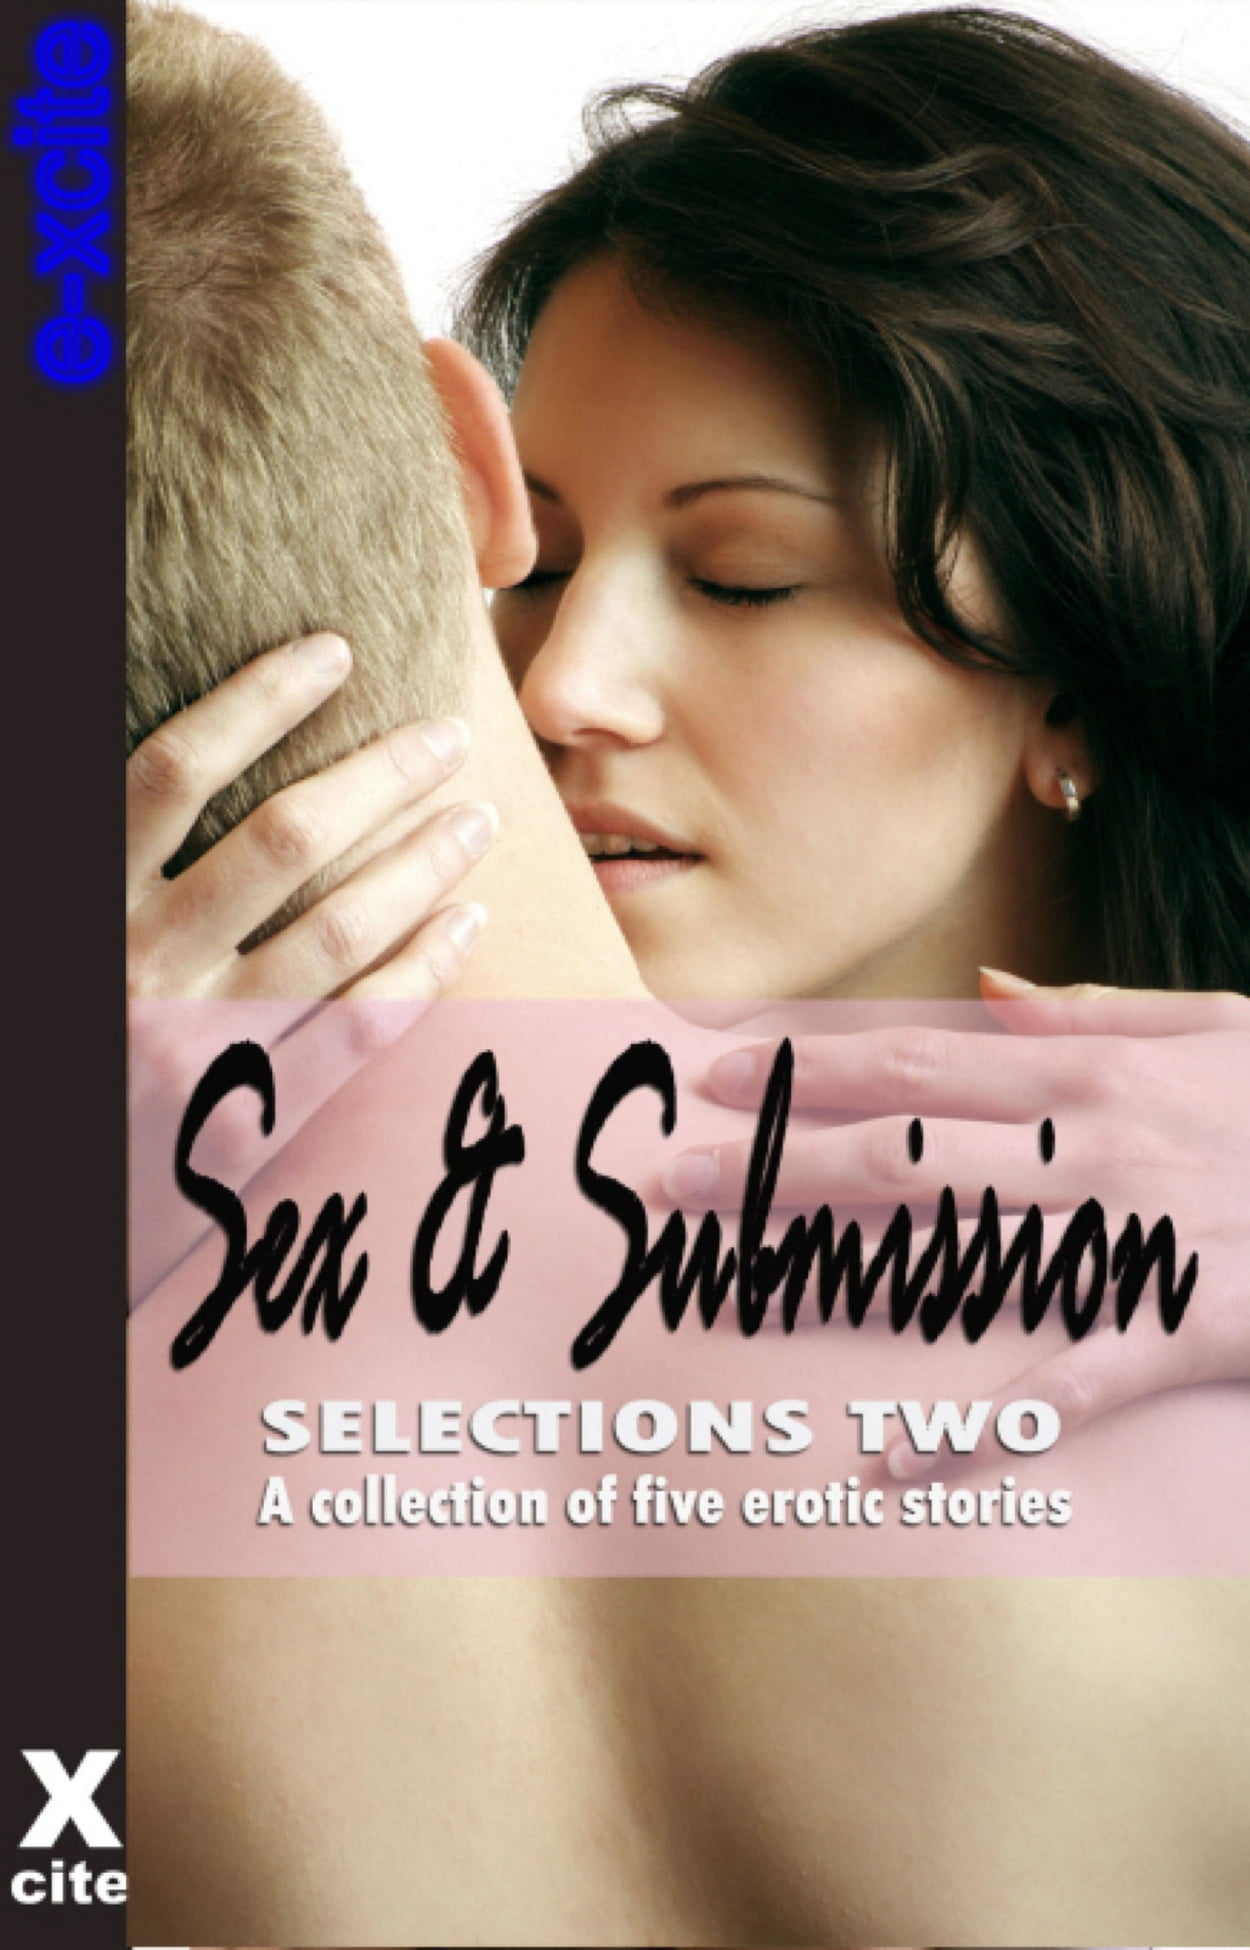 Sex and Submission Selections Two de Landon Dixon PDF / ean: 978-1907761188